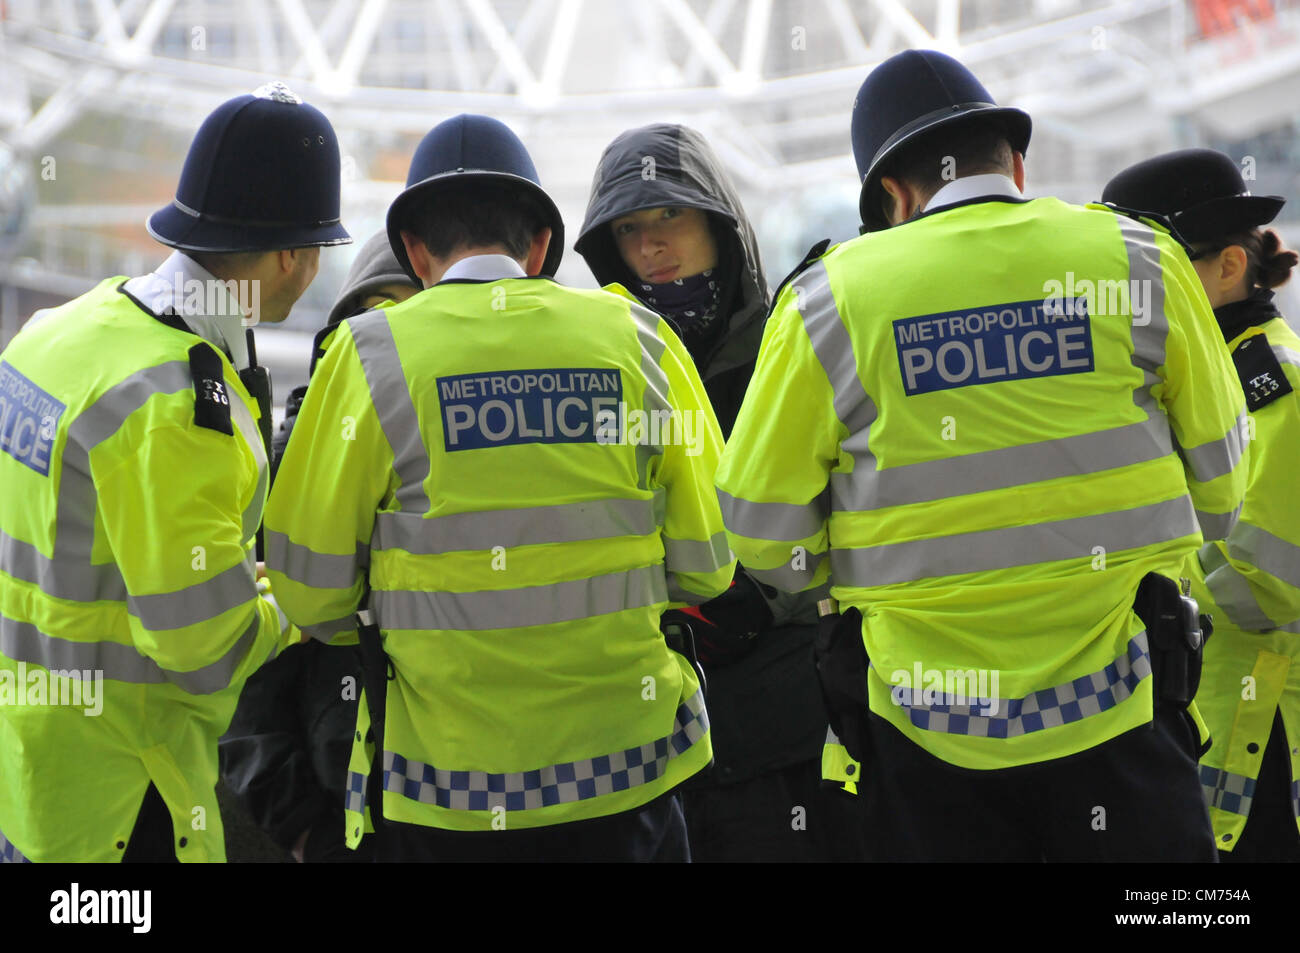 Embankment, London, UK. 20th October 2012. Two young men being spoken to by police officers on the Embankment. TUC - Stock Image